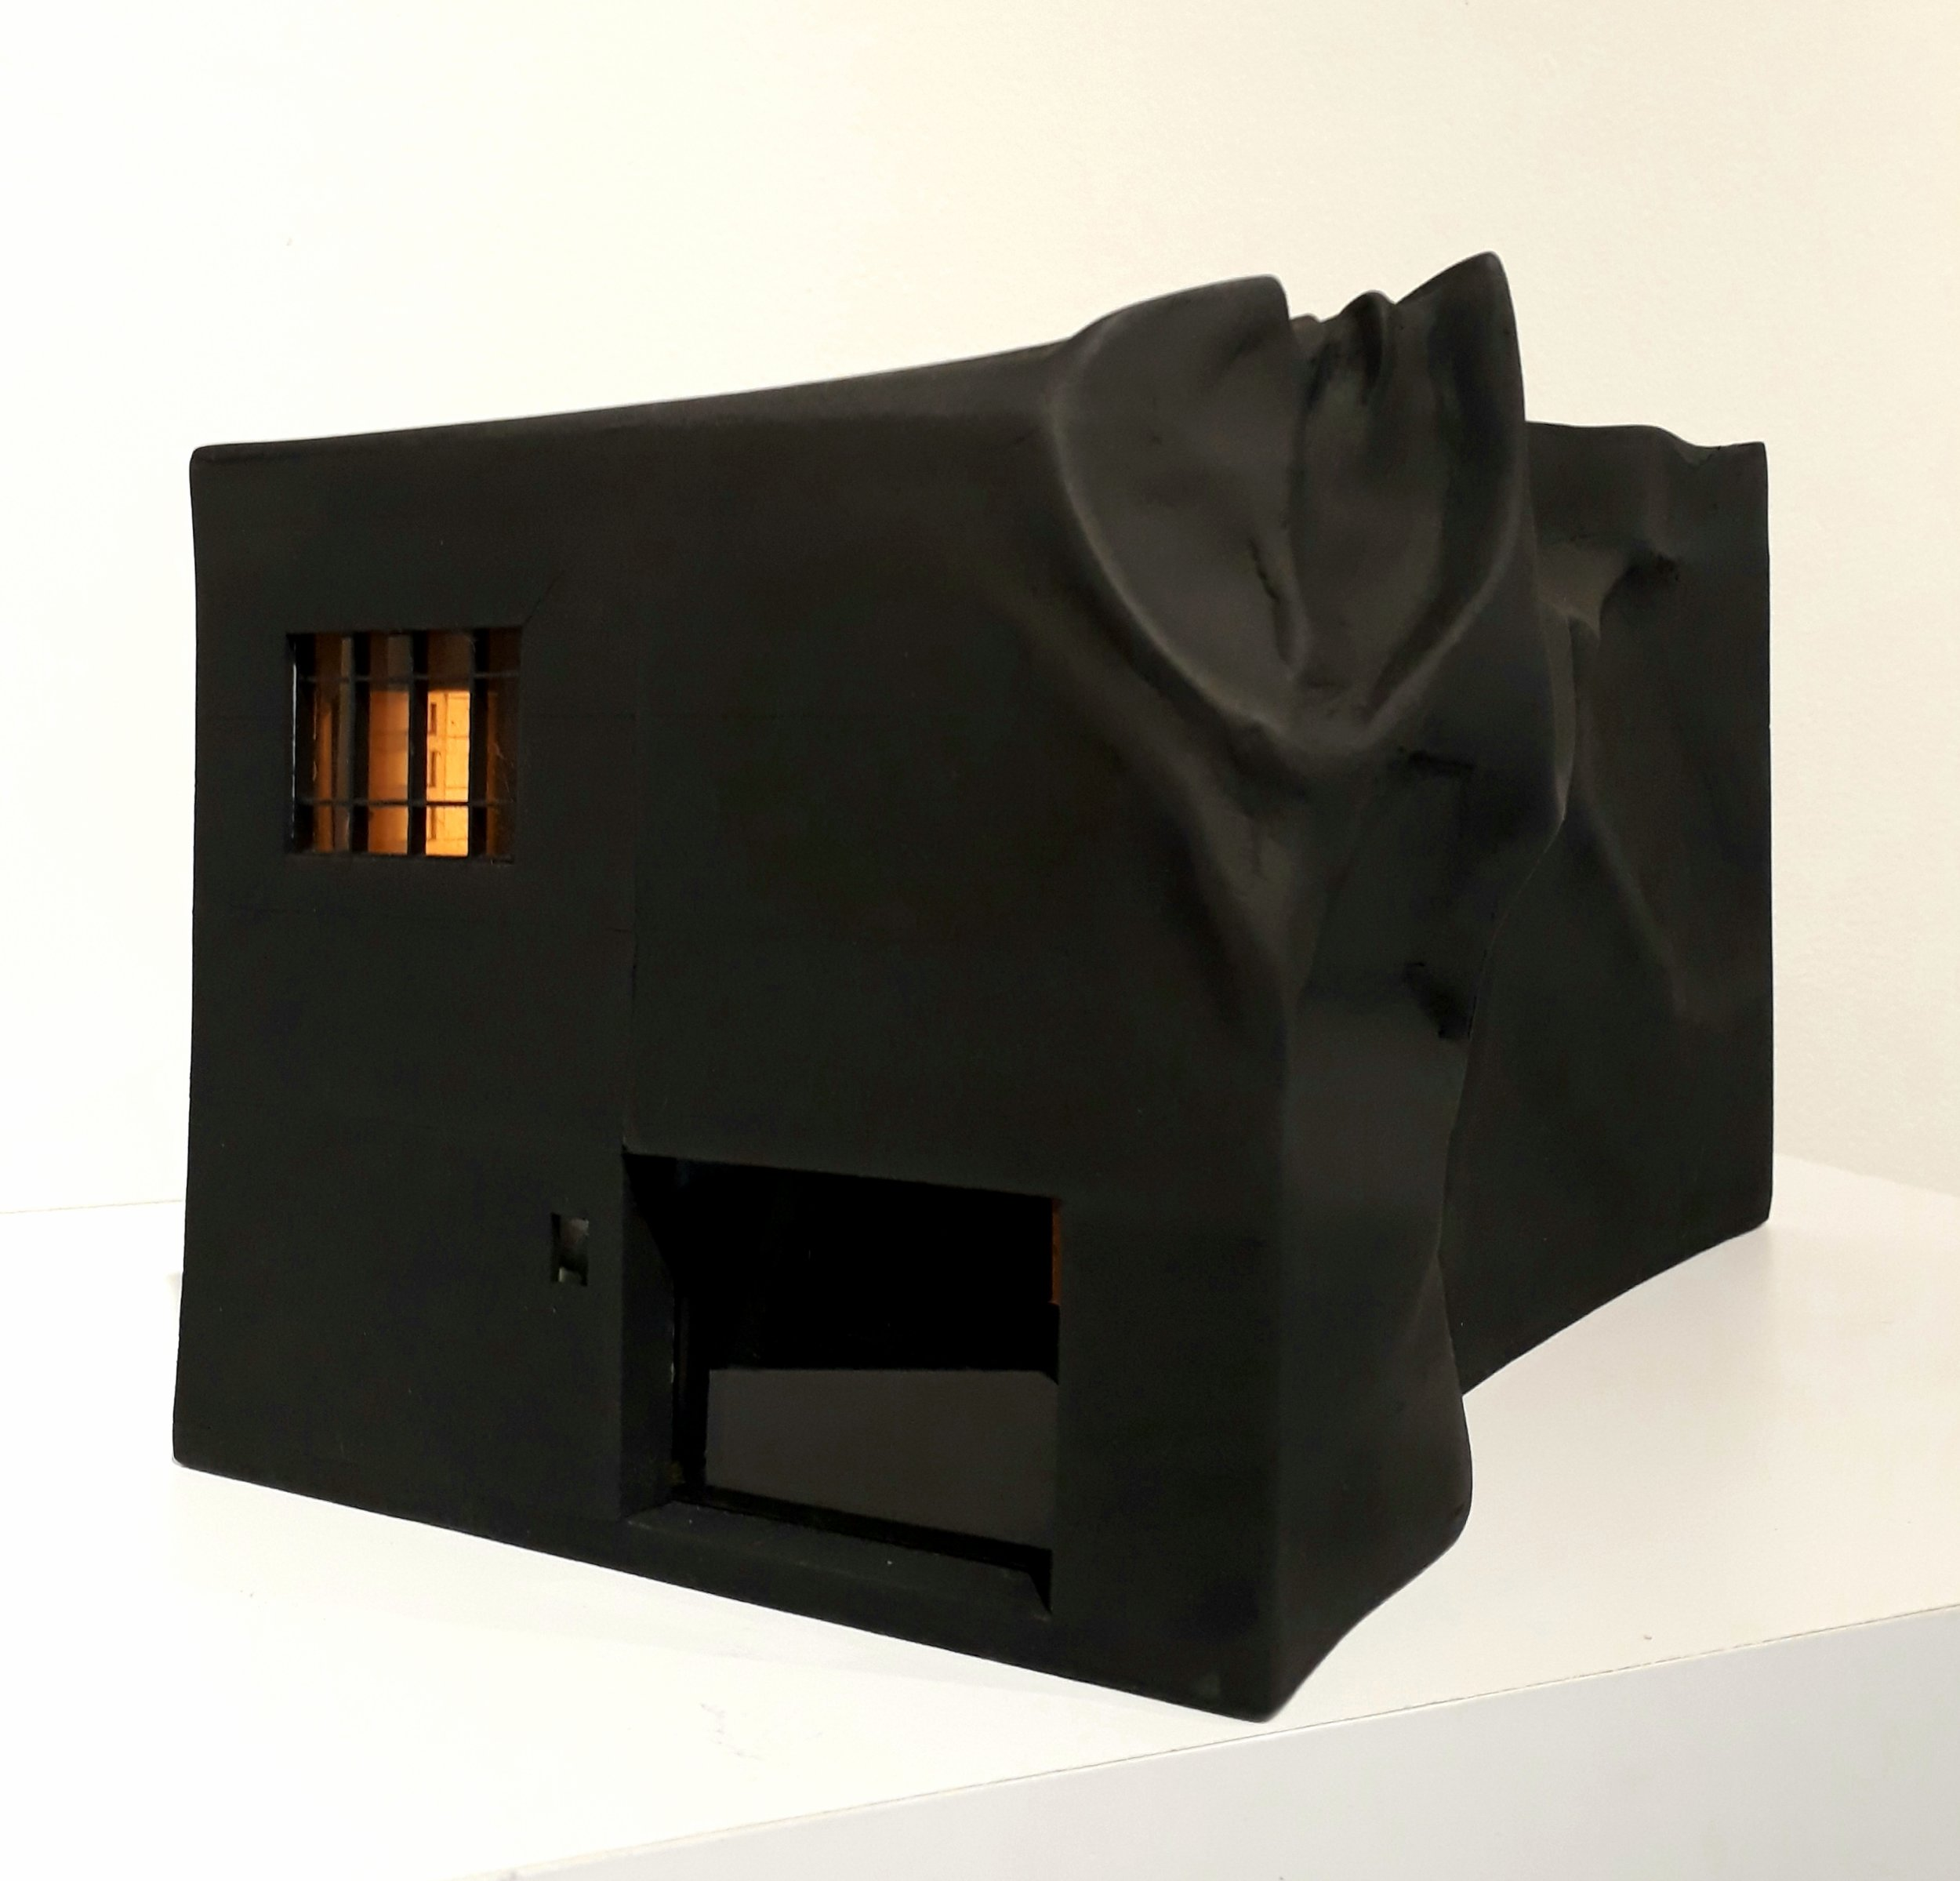 Arrugamiento In situ: Beta (2018) - 14 x 15 x 25,5 cm - Maqueta en MDF, cartón, papel, pintura y luz led / Model made in wood agglomerate, cardboard, paper, mirror and LED light